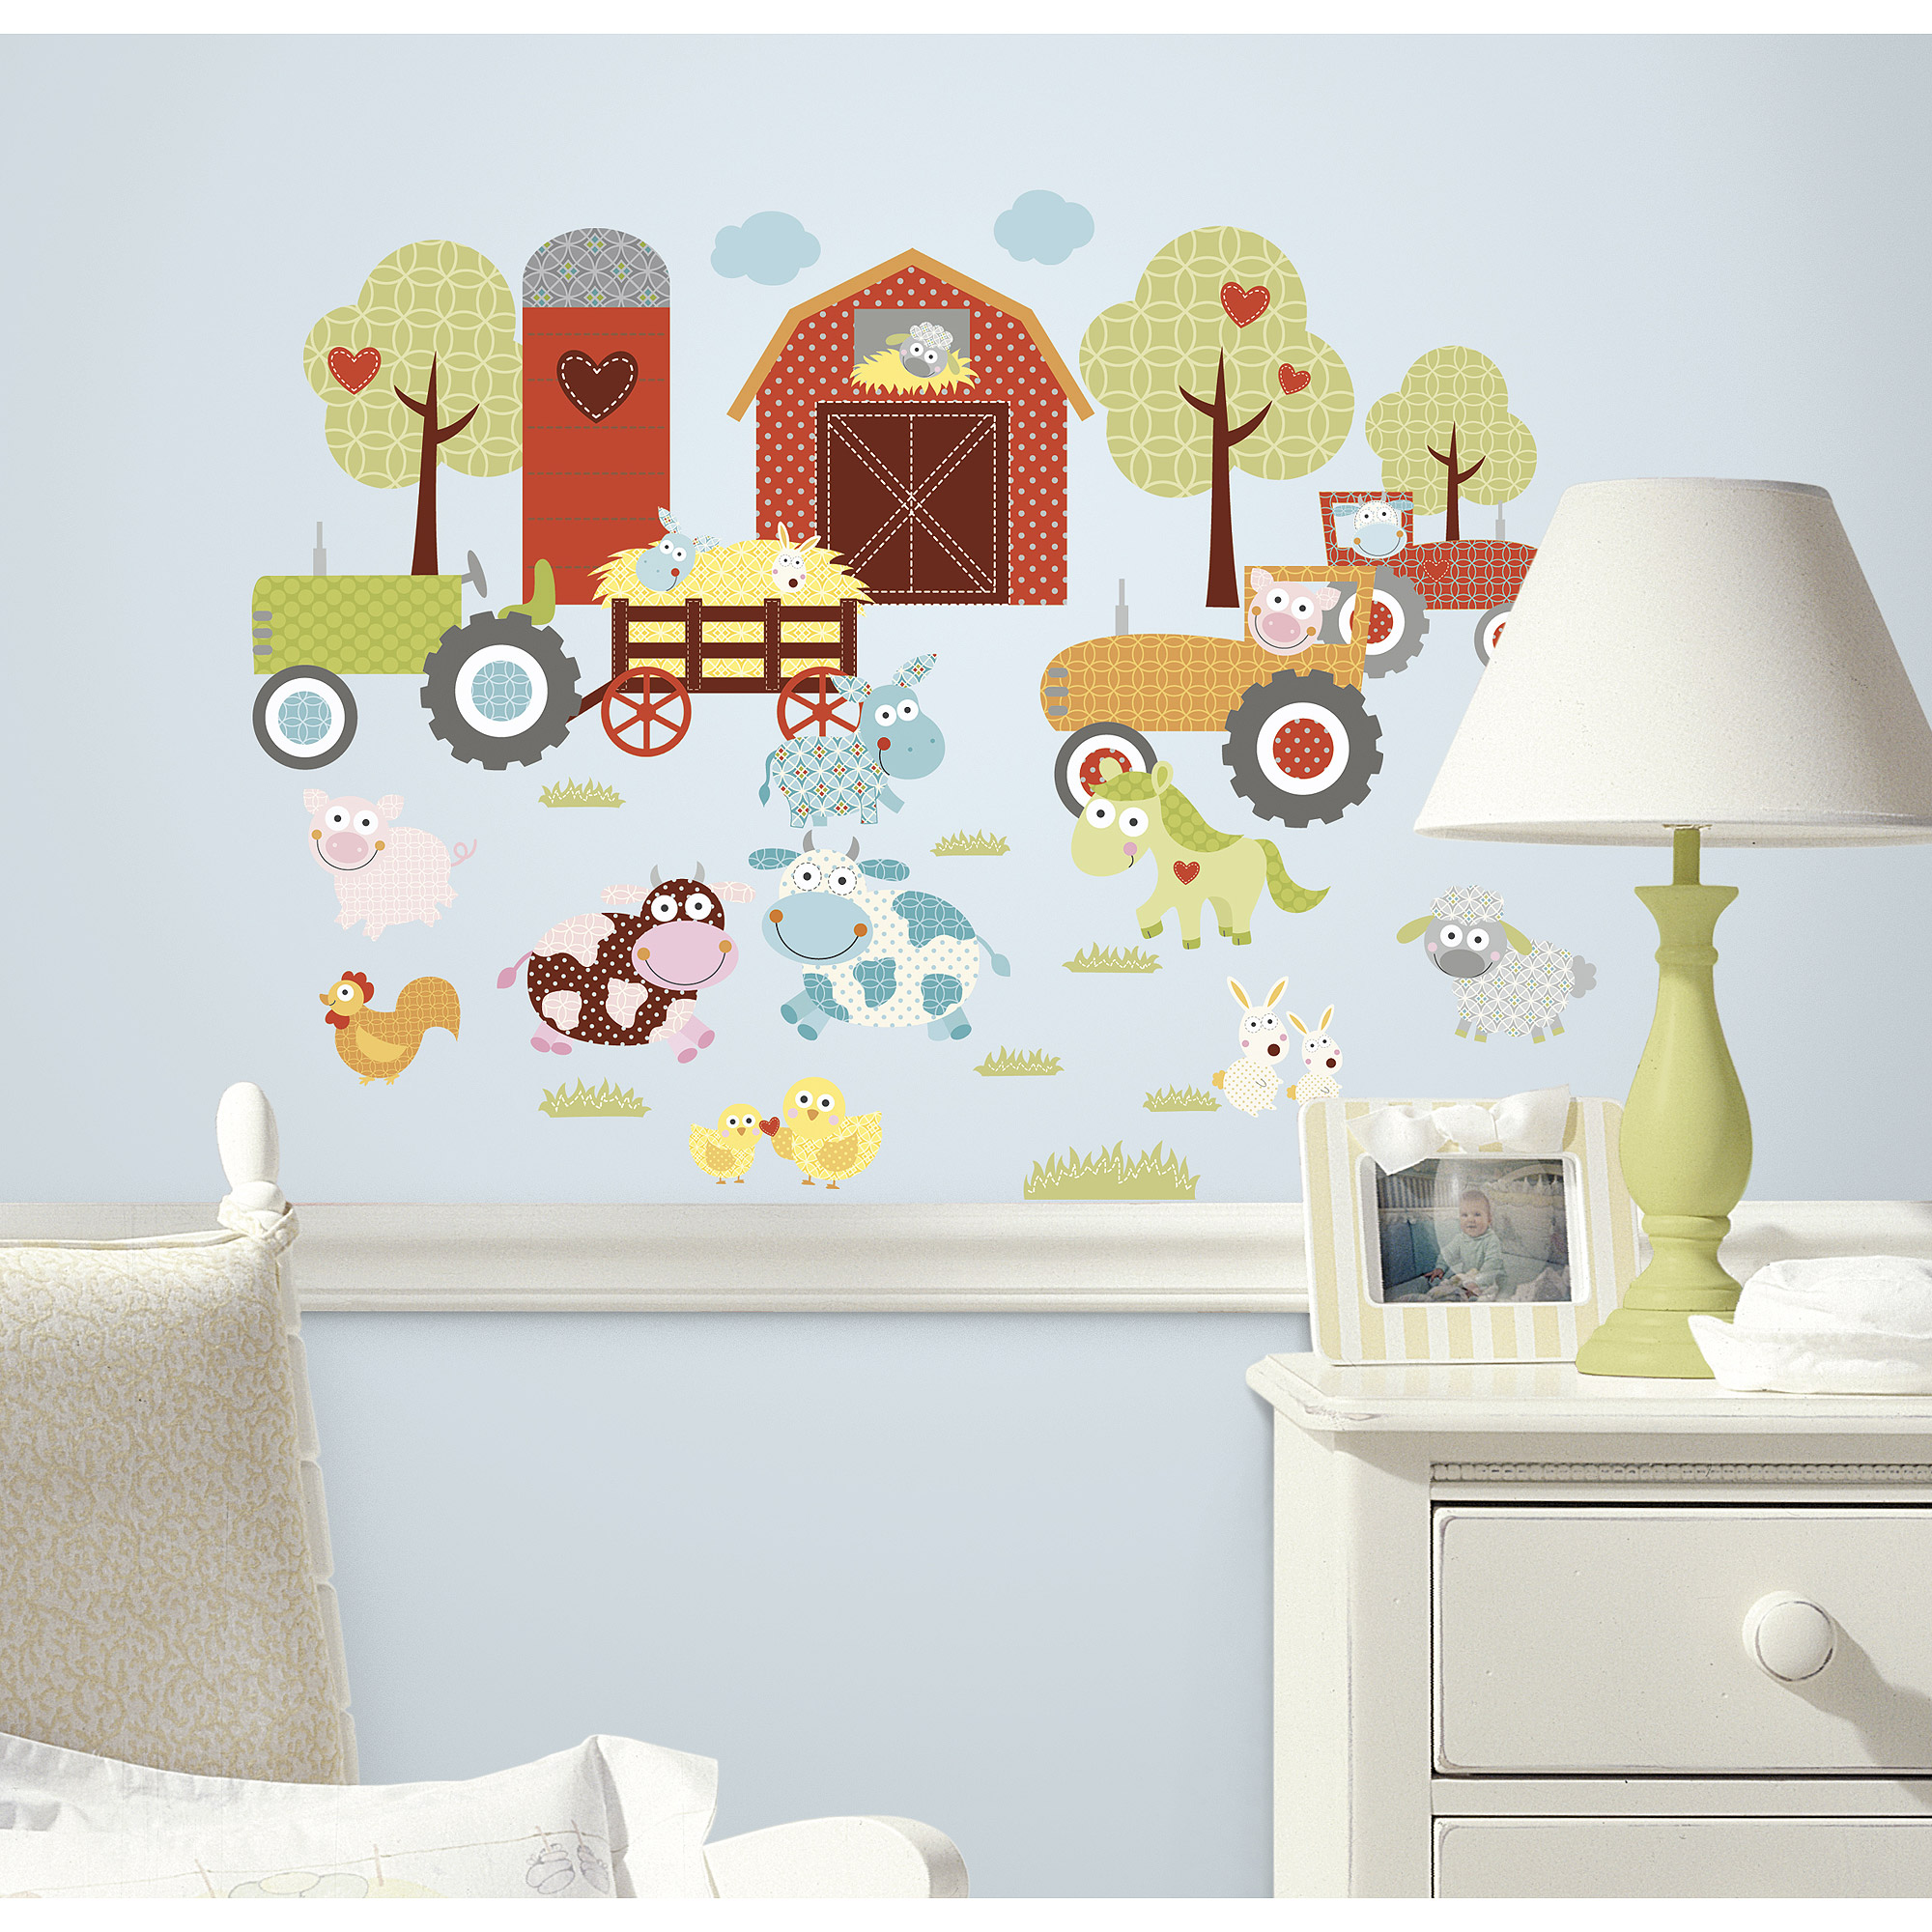 RoomMates Happi Barnyard Peel & Stick Wall Decals